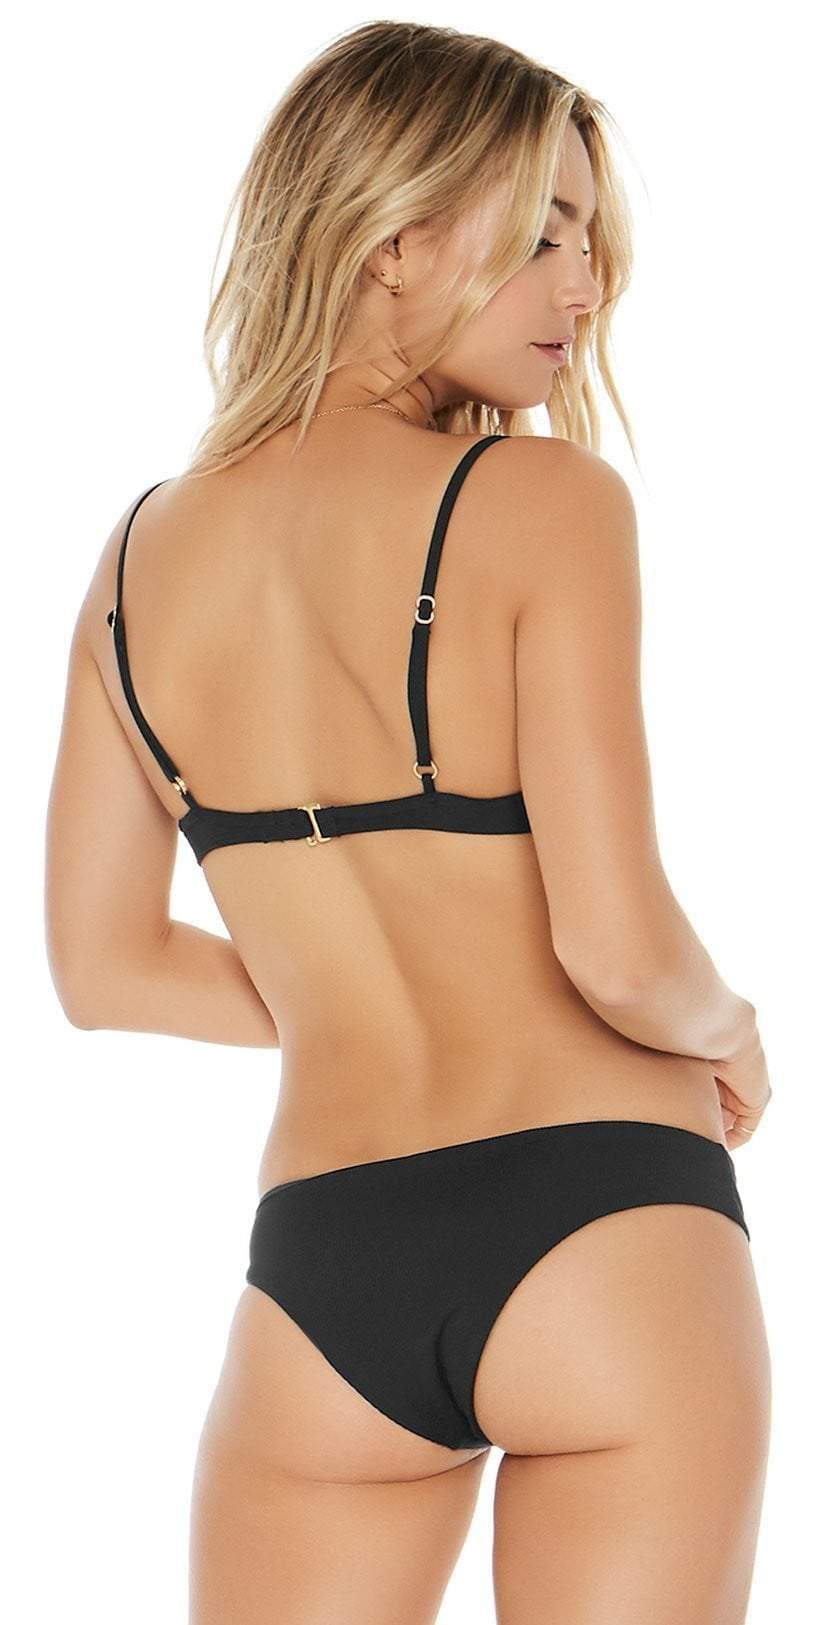 L Space Ridin' High Pixie Bottom in Black RHPIB17-BLK back view of top and bottom